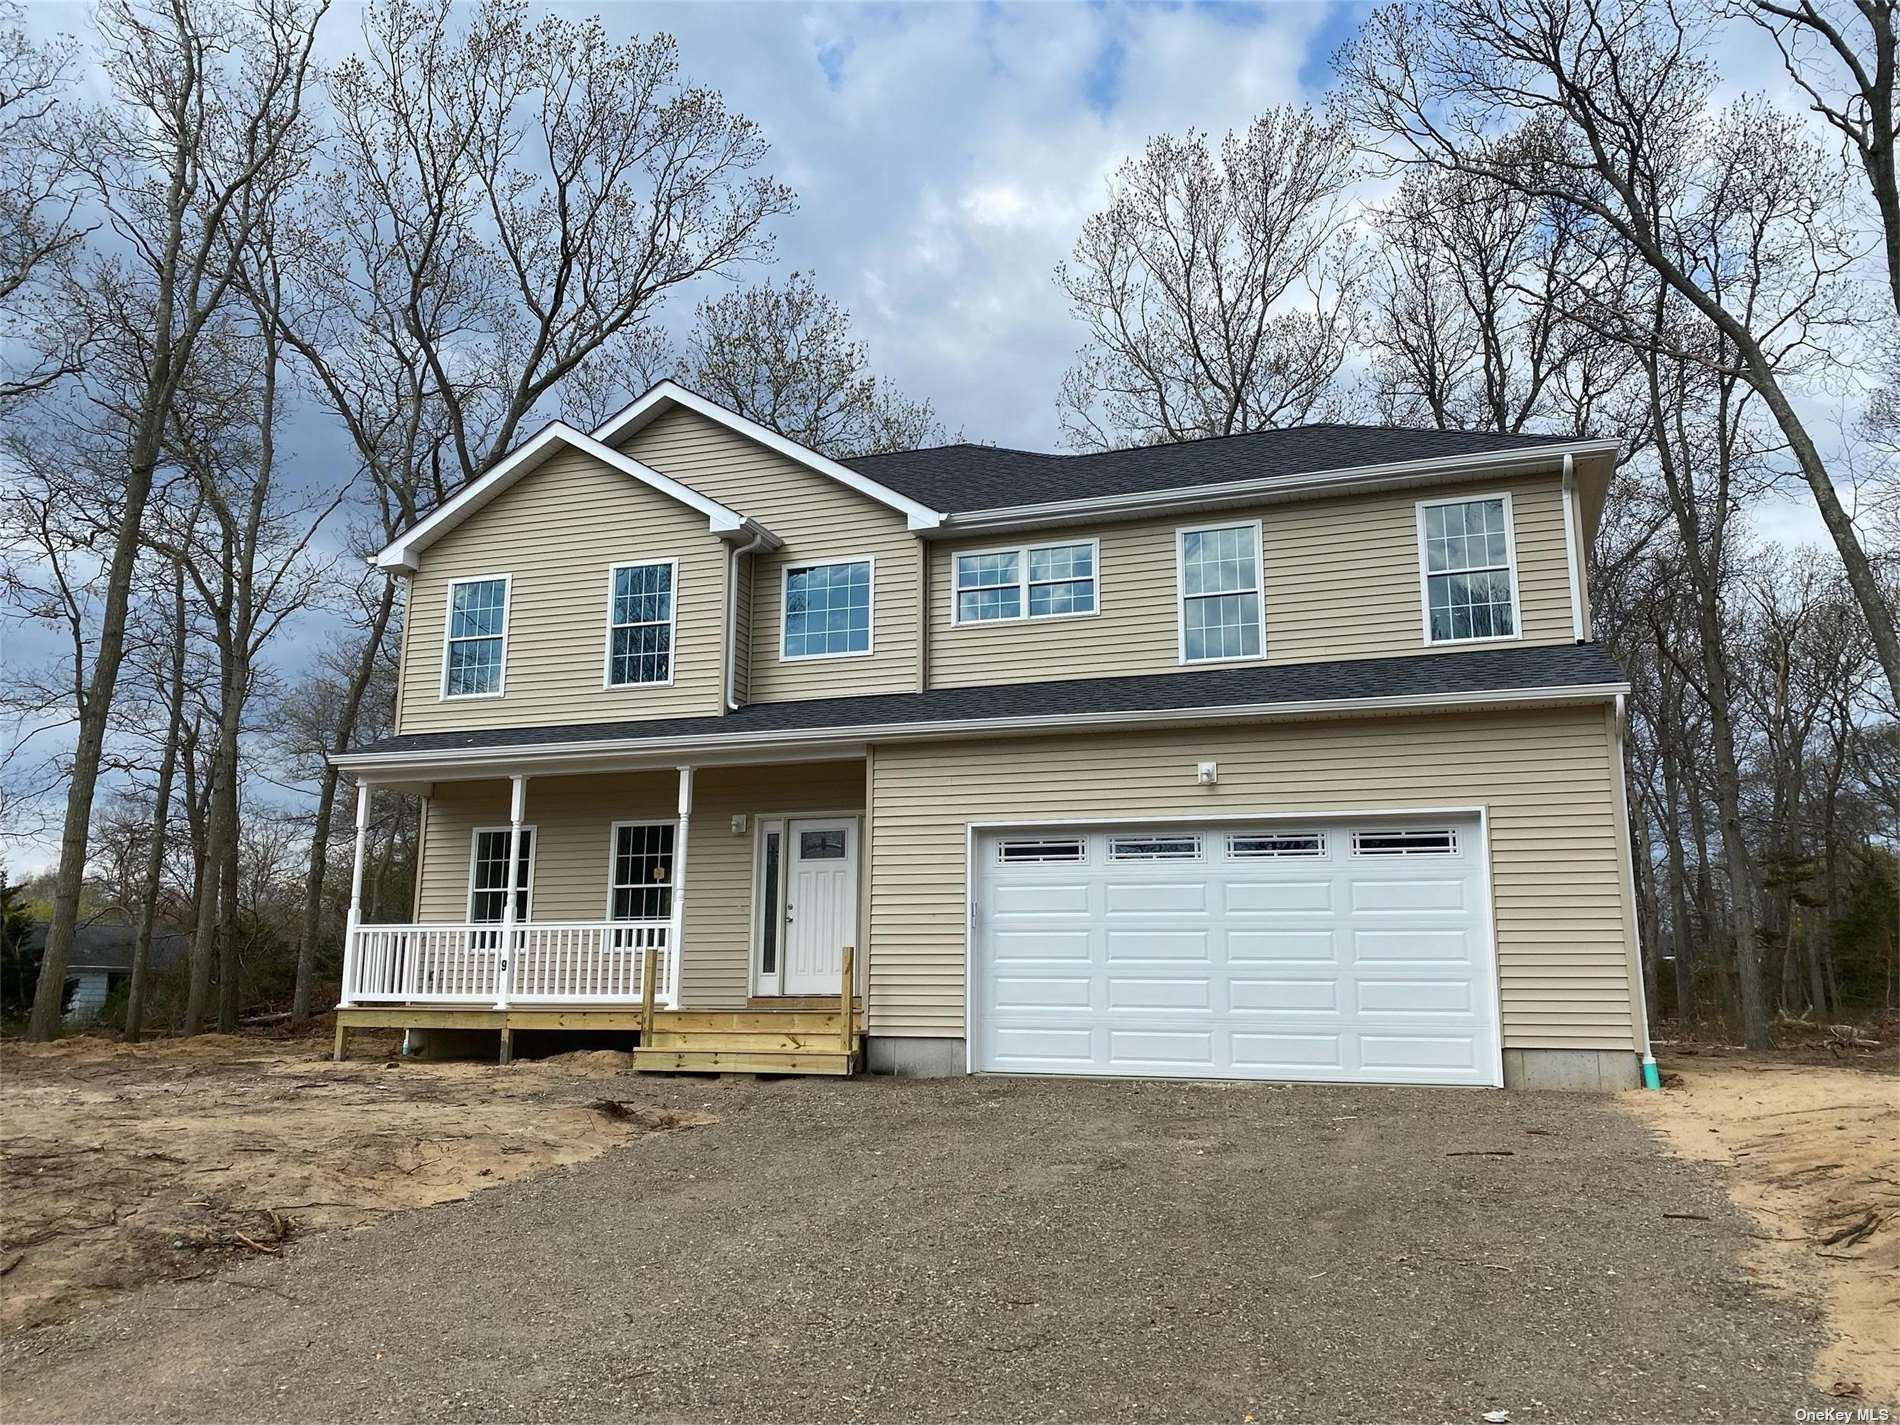 Lot 48 Ruth Court, Riverhead, NY 11901 - MLS#: 3284176